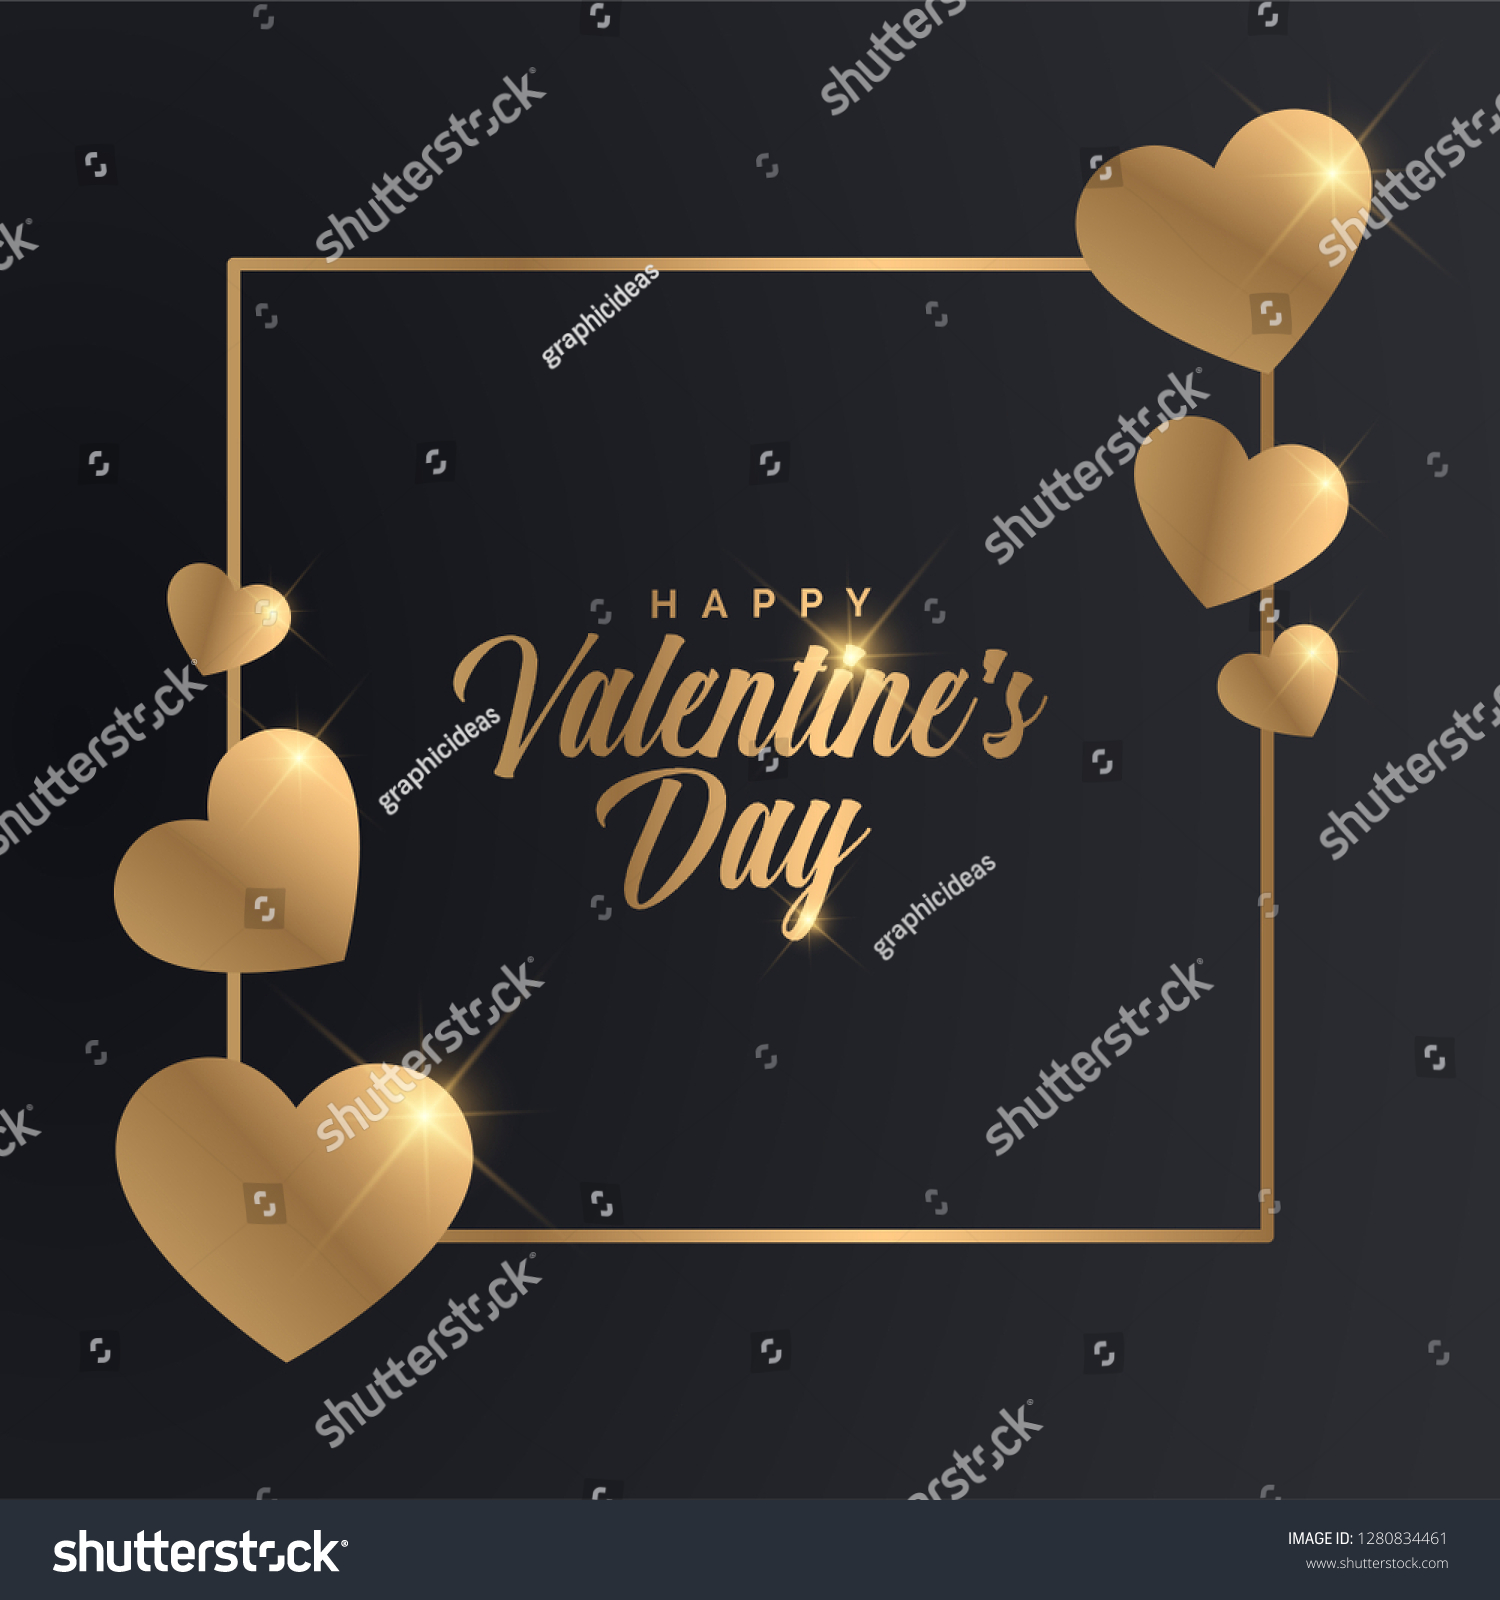 Valentines Day Banner. Luxury Golden Typographic Valentine's Day Design.  #1280834461